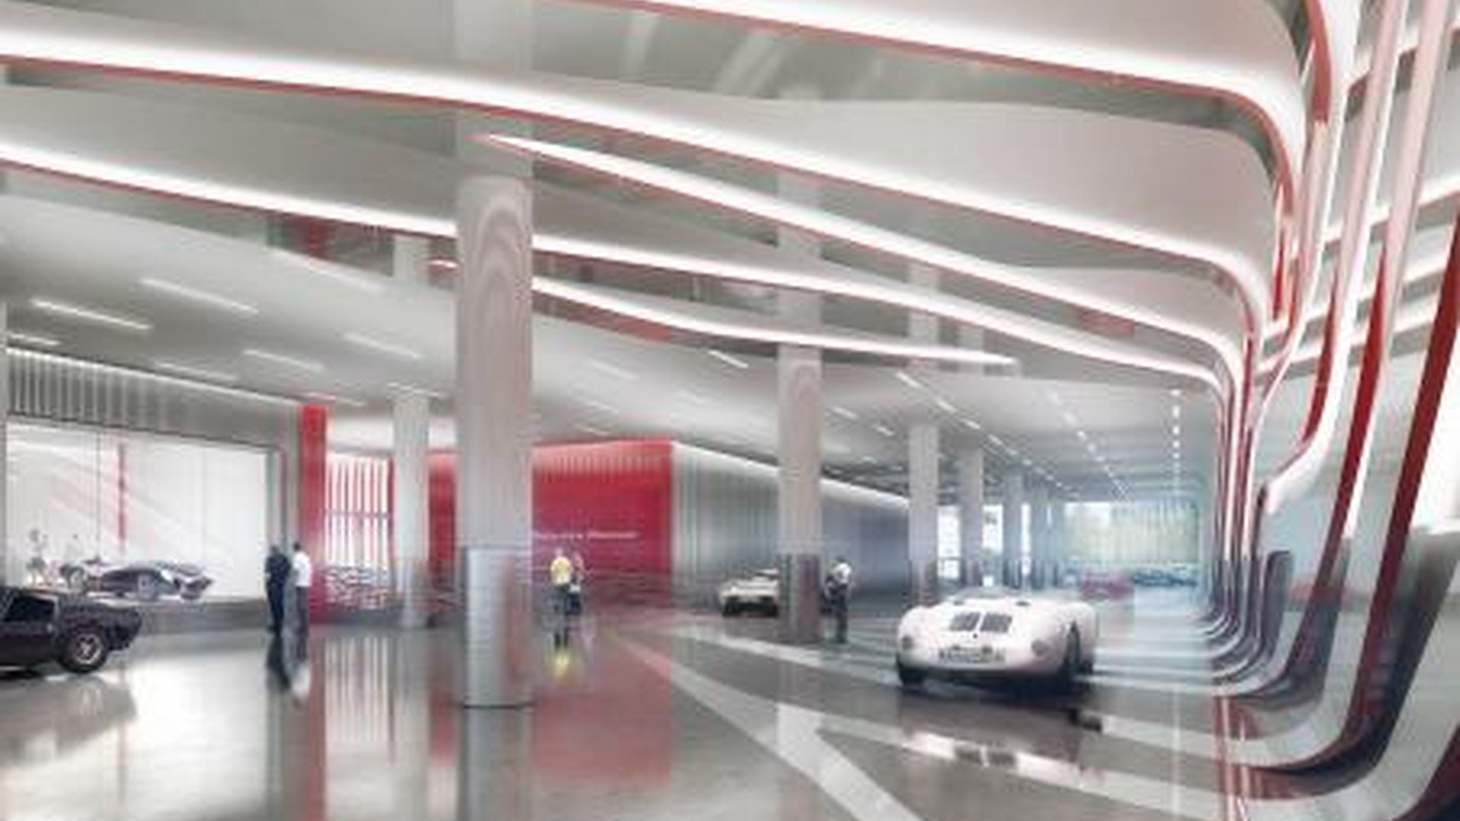 The Petersen Automotive Museum changes gear amidst reports of secretive sales of classic cars. Santa Monica's anti-nuclear Chain Reaction needs funds to avoid a meltdown.